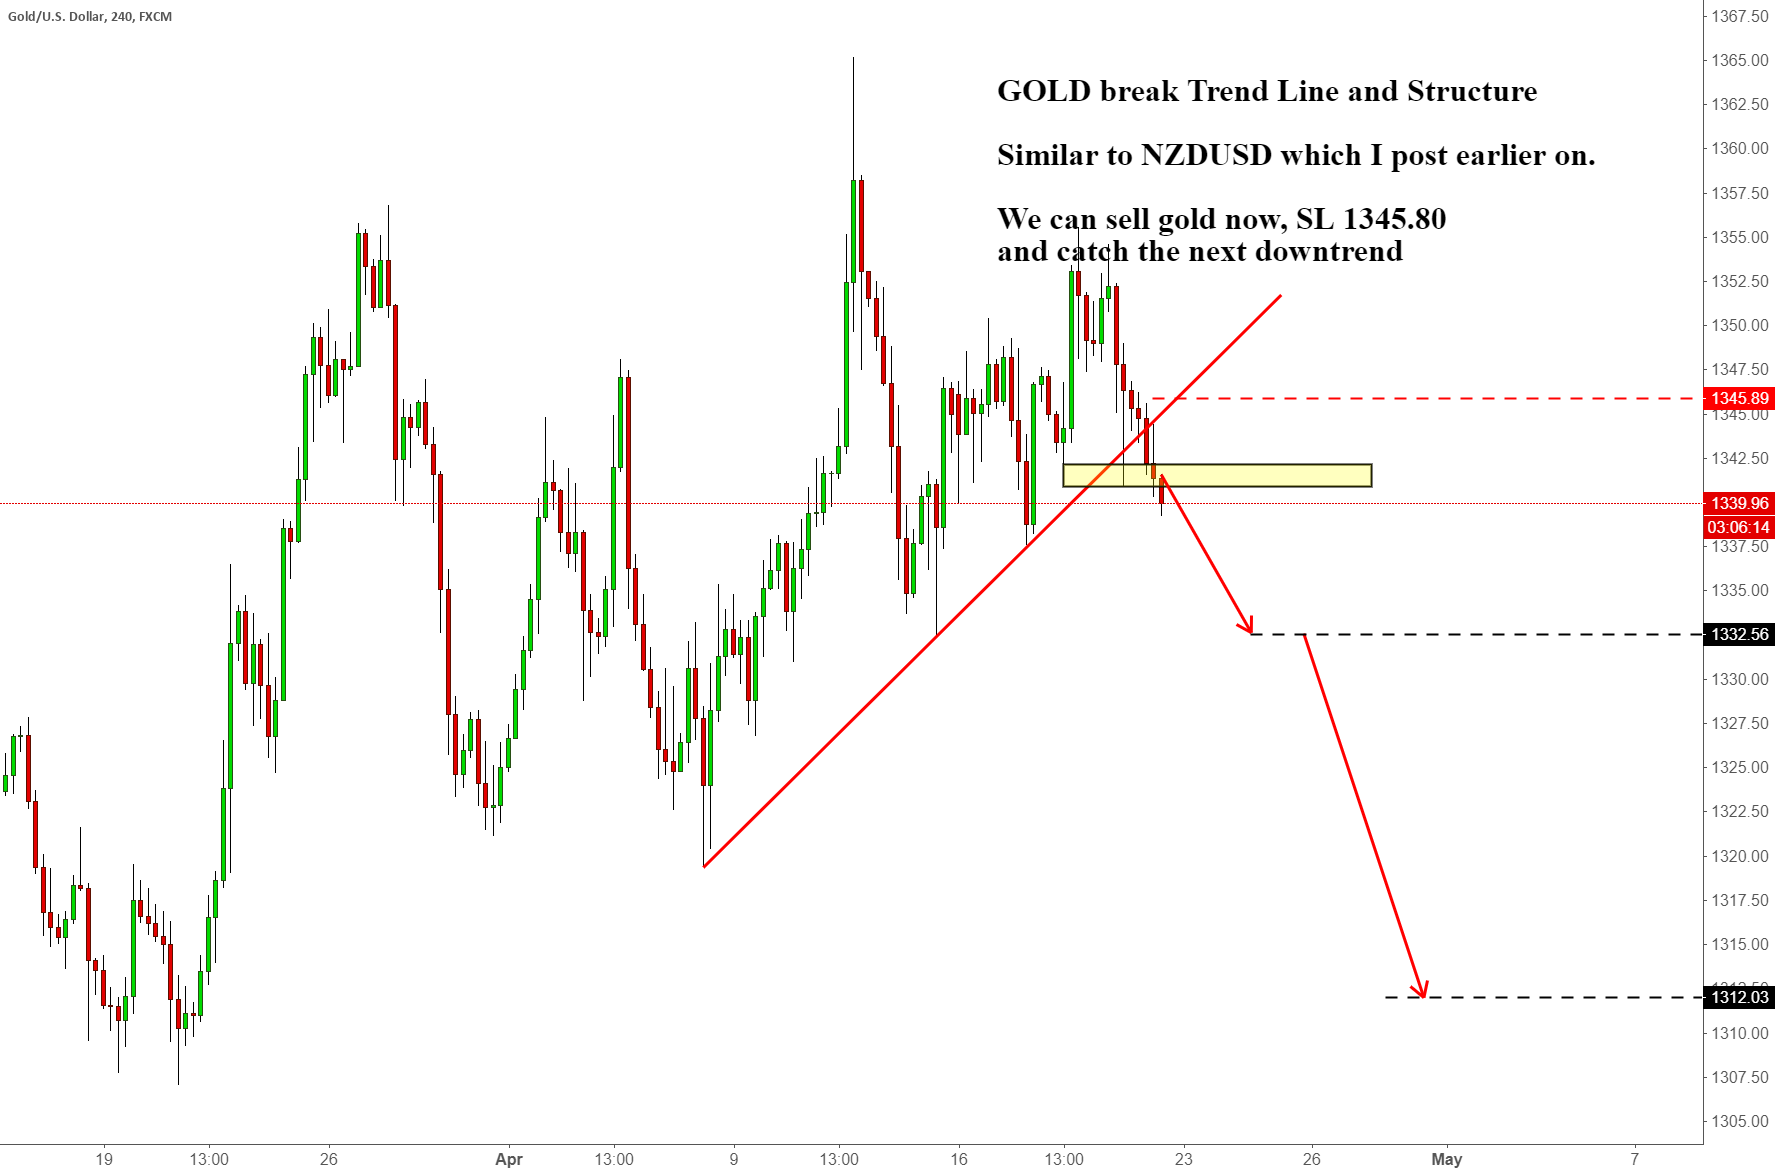 GOLD break Trend Line and Structure